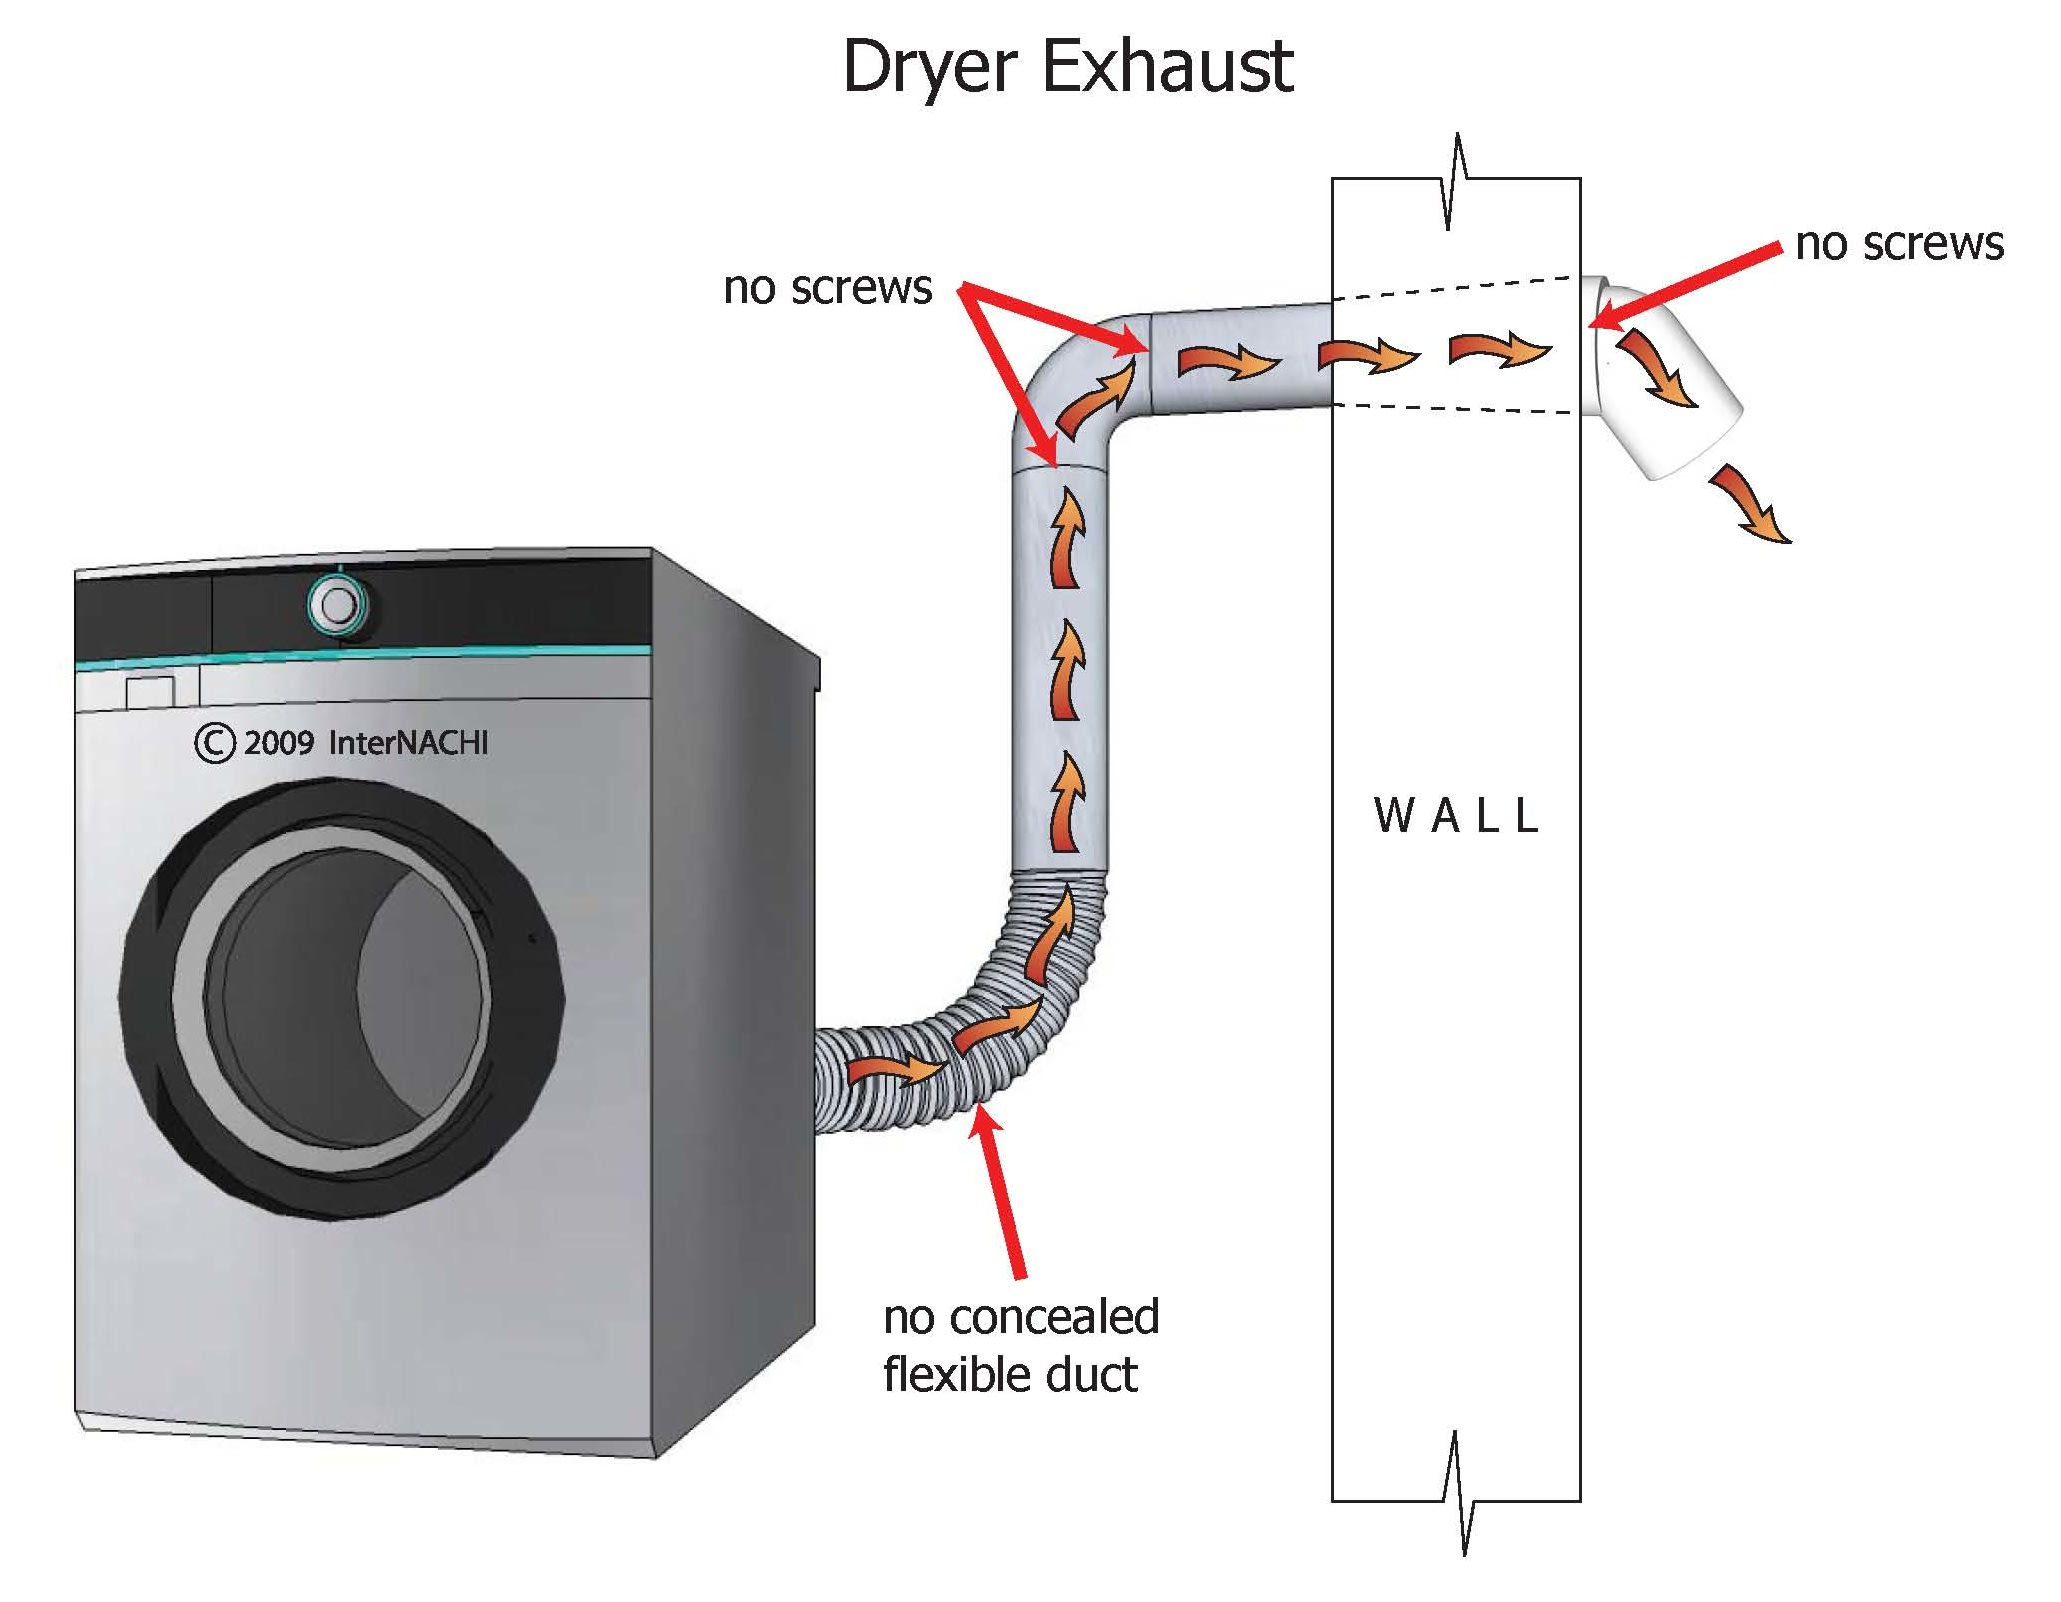 Dryer exhaust.